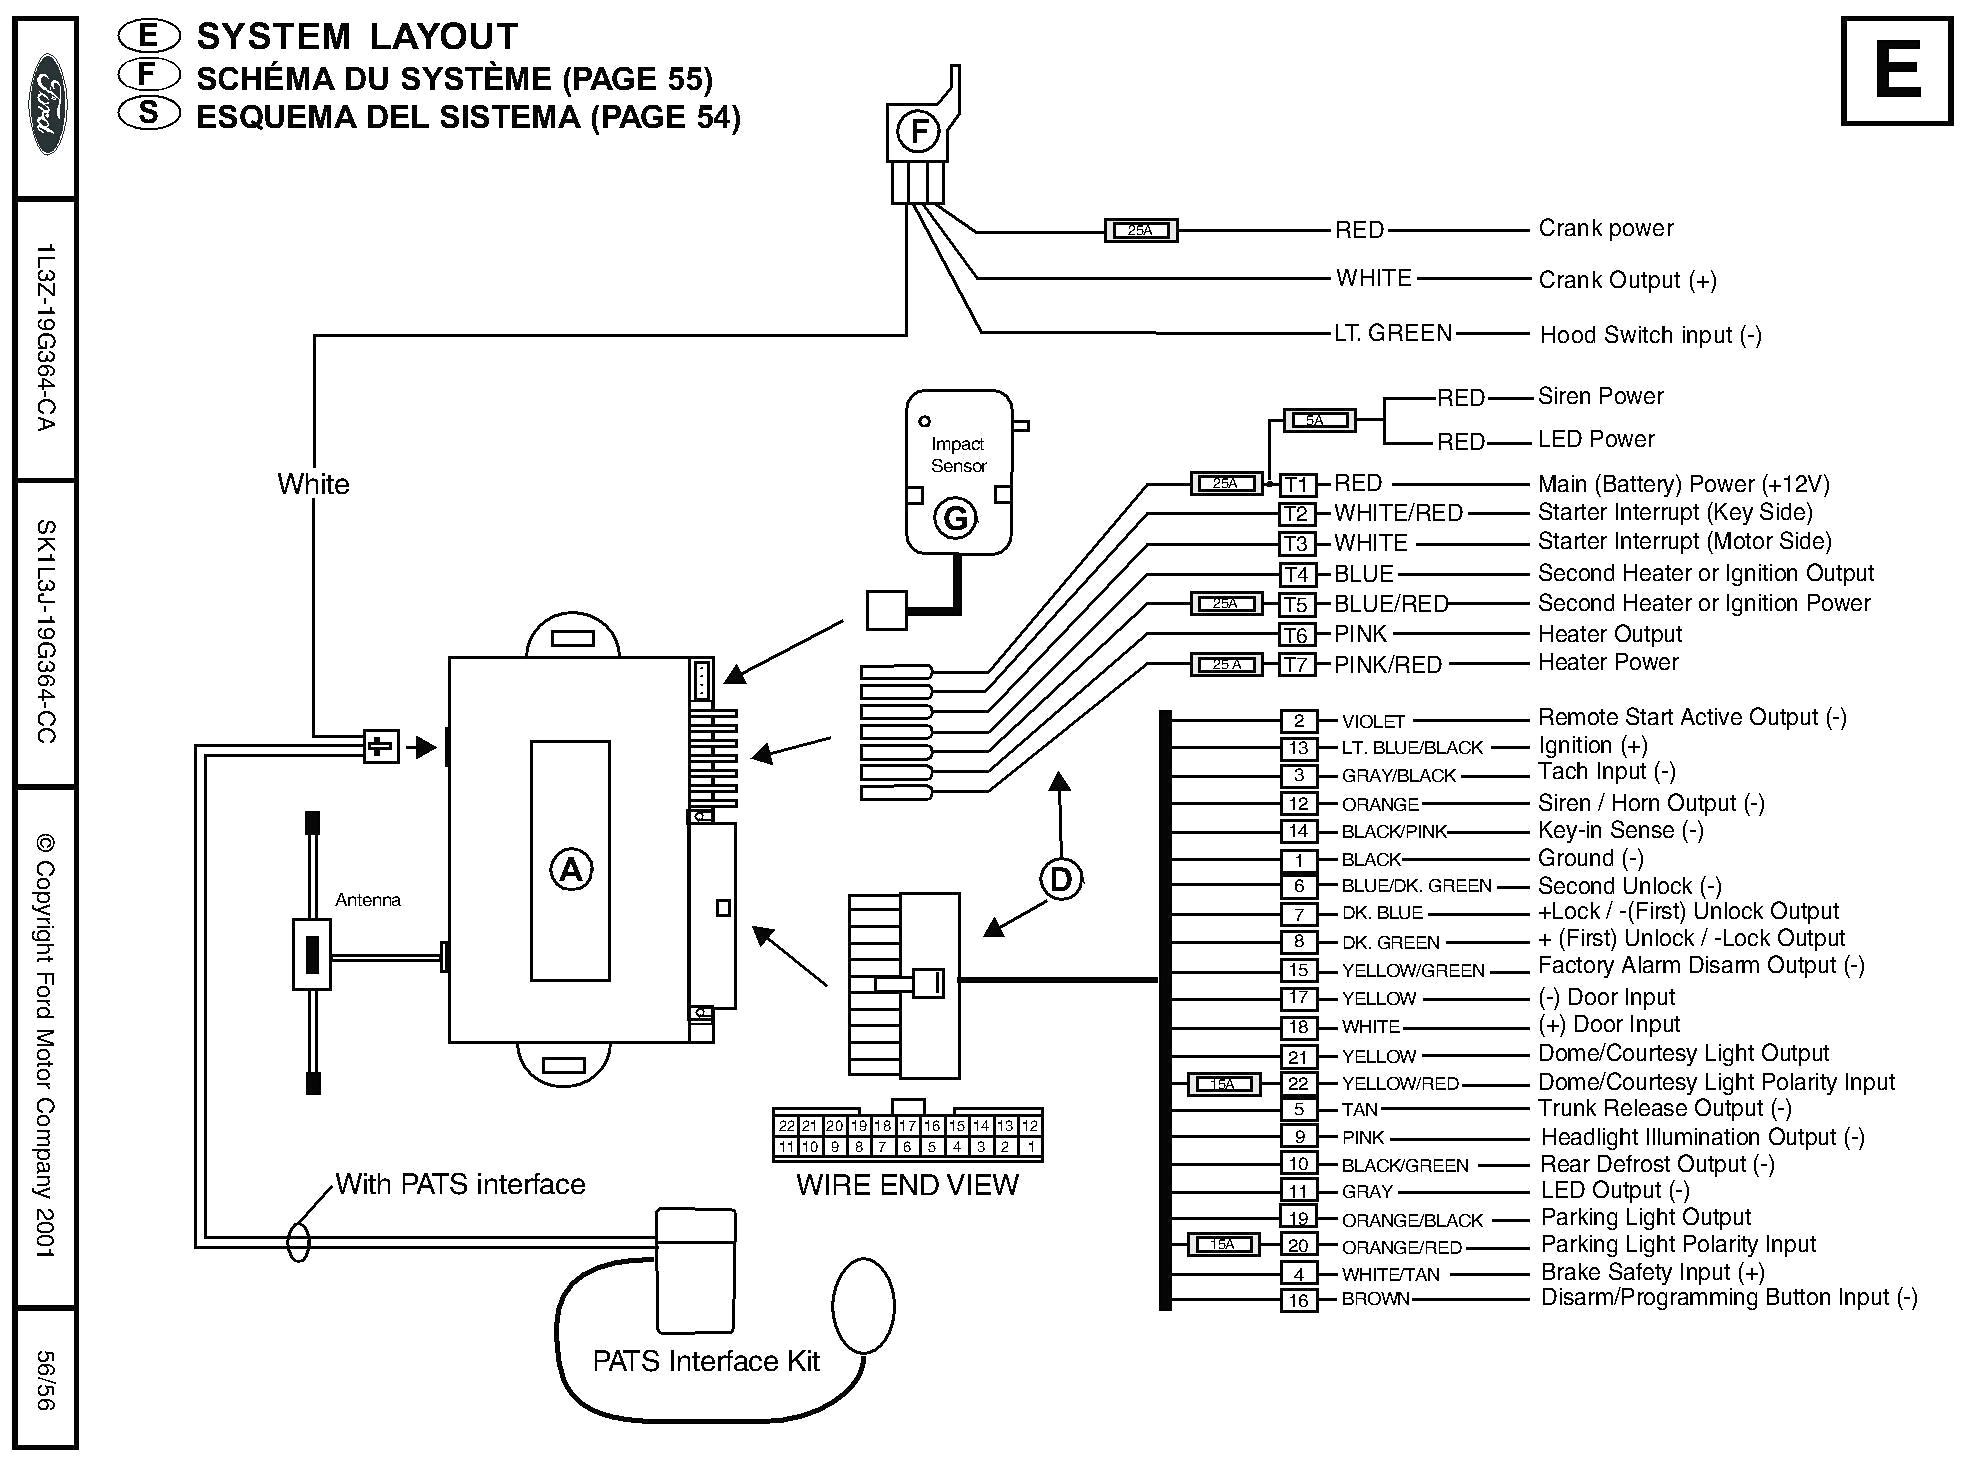 wiring diagram for temp gauge sensor pennock39s fiero forum wire rh abetter pw